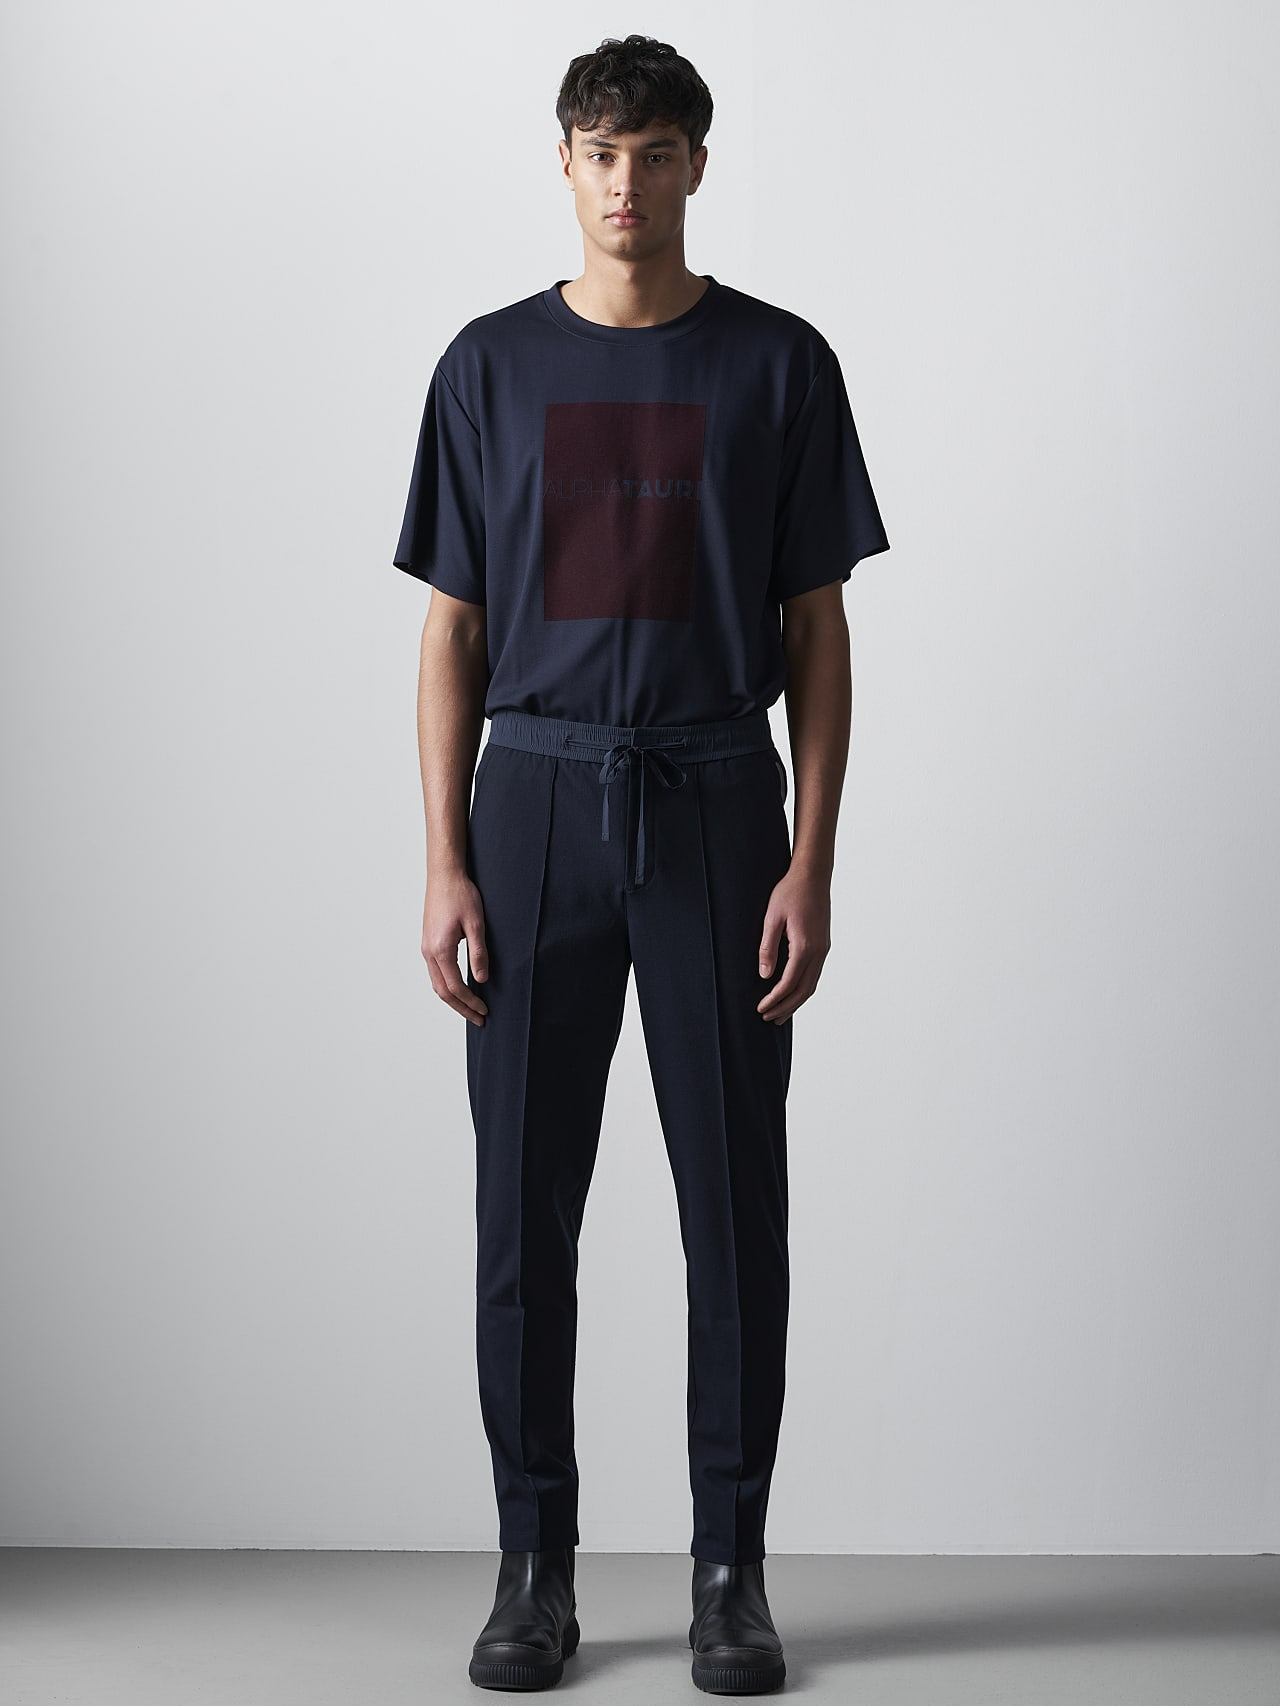 PANZA V1.Y5.02 Slim Pleat Trousers navy Front Alpha Tauri